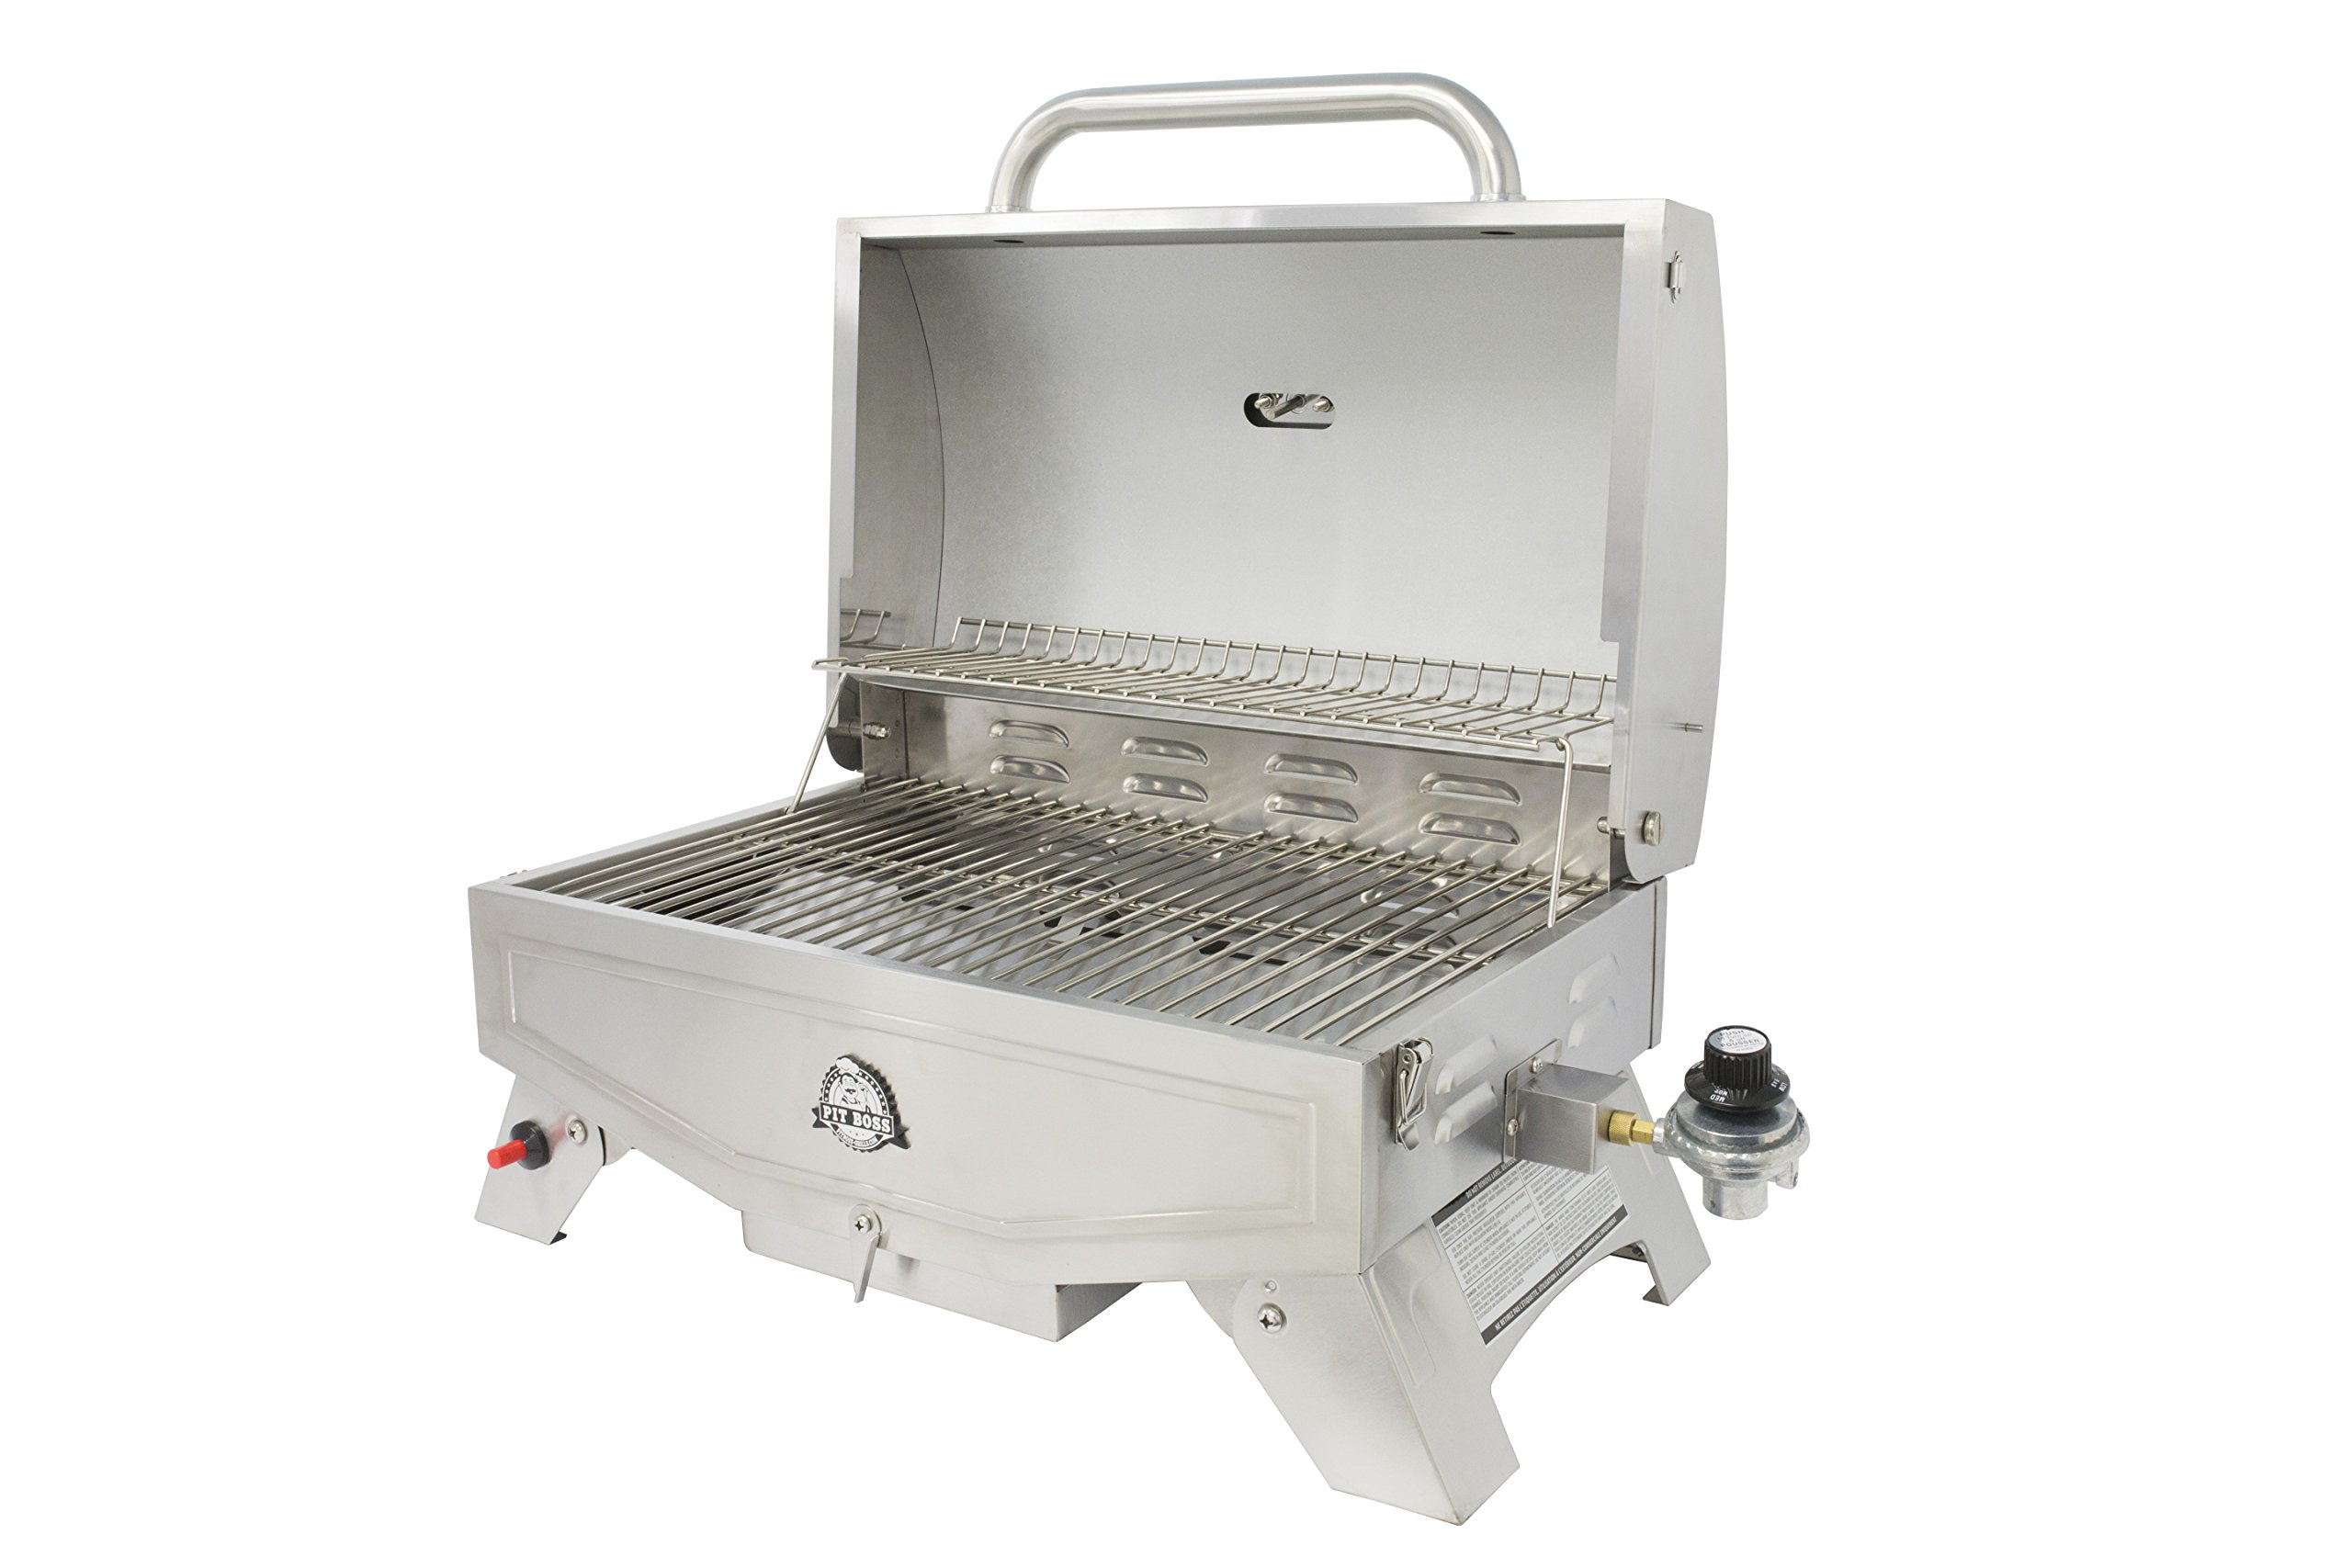 Pit Boss Grills PB100P1 Pit Stop Single-Burner Portable Tabletop Grill by Pit Boss Grills (Image #3)